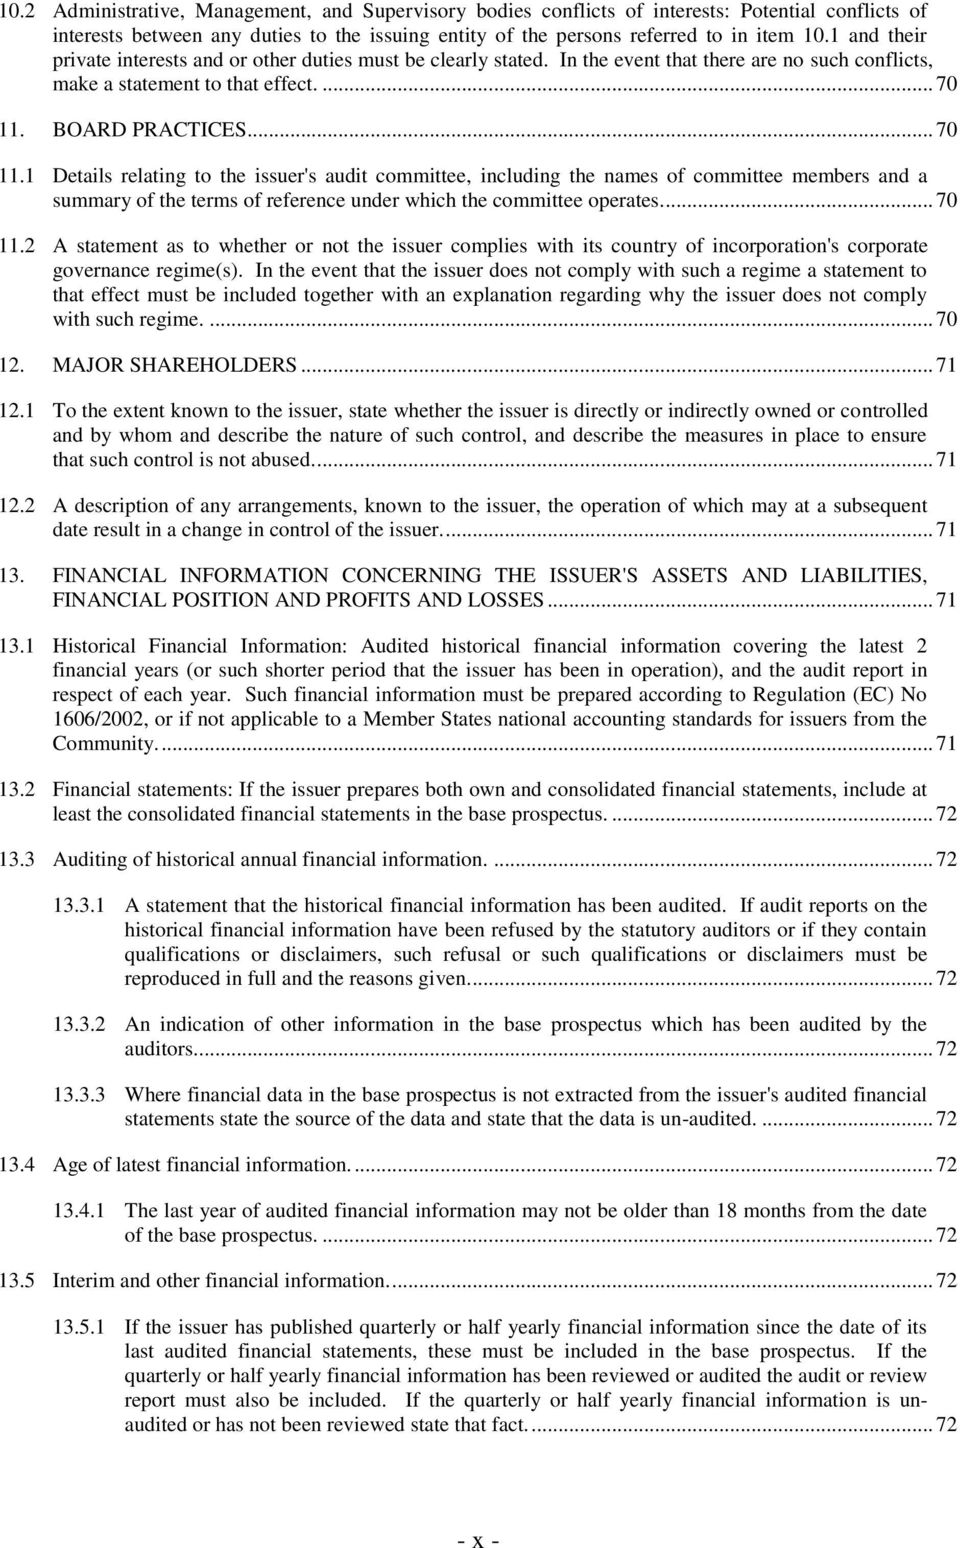 BOARD PRACTICES... 70 11.1 Details relating to the issuer's audit committee, including the names of committee members and a summary of the terms of reference under which the committee operates.... 70 11.2 A statement as to whether or not the issuer complies with its country of incorporation's corporate governance regime(s).